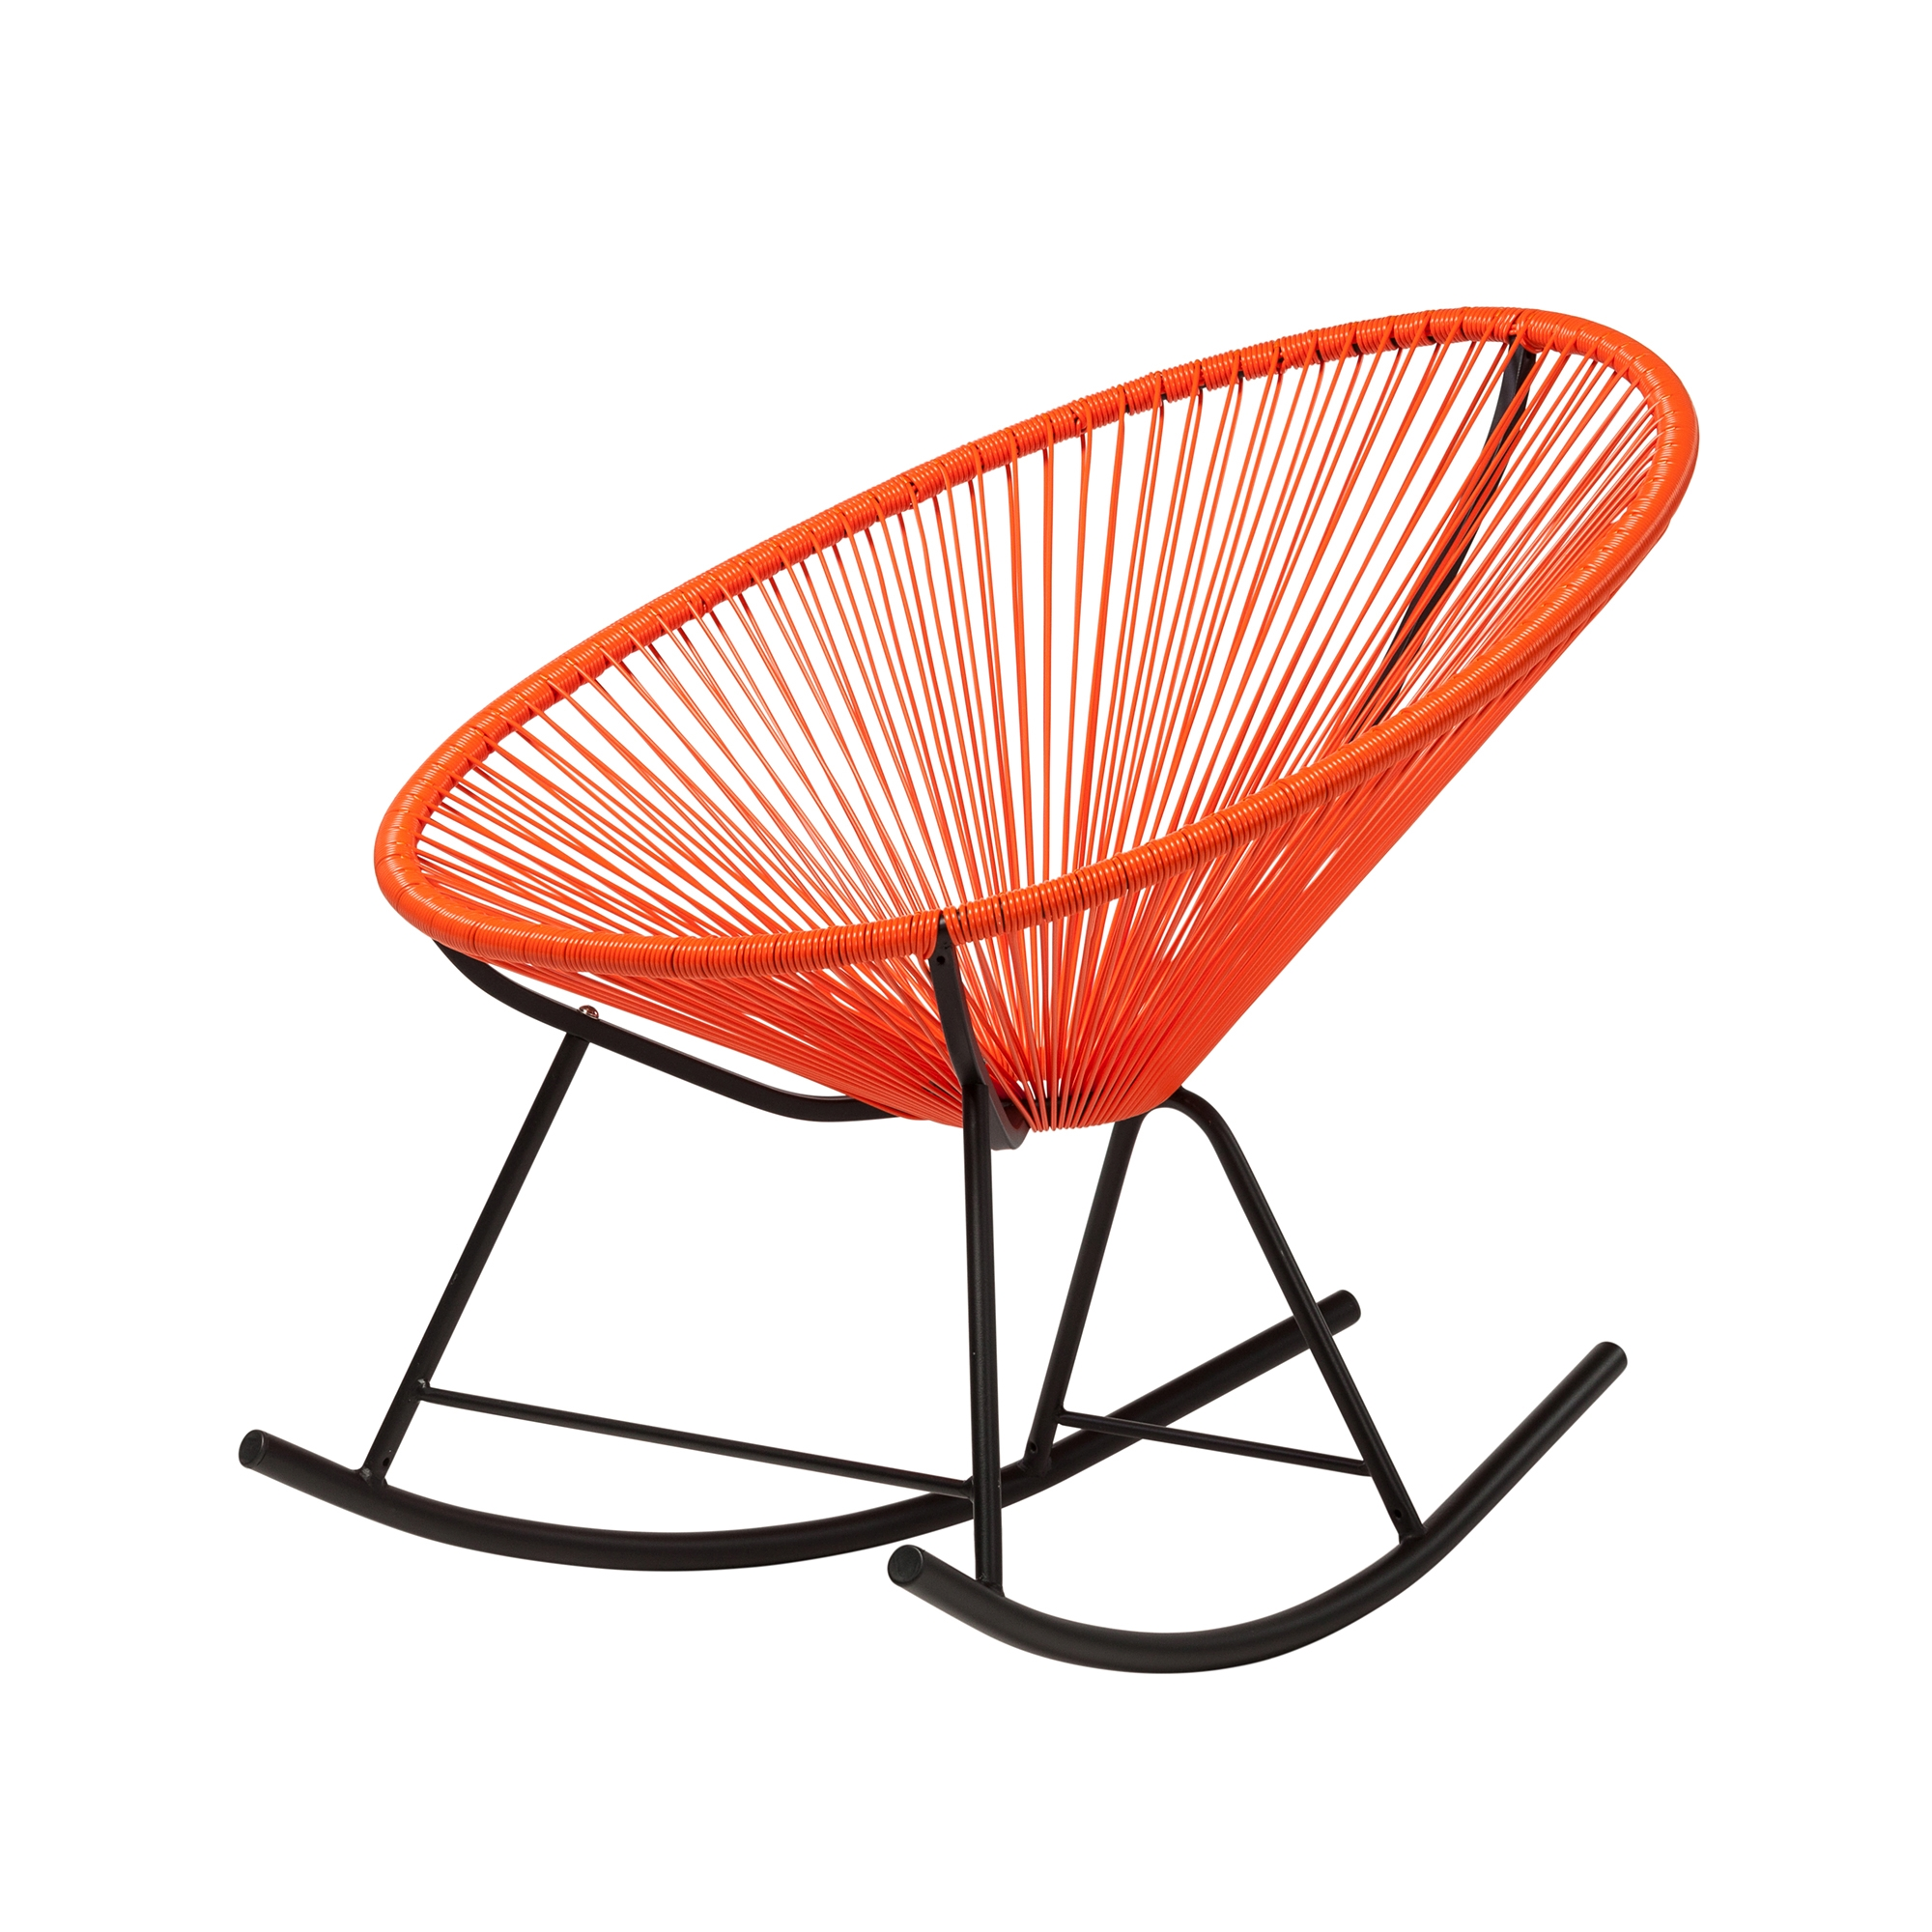 Amazing Acapulco Indoor Outdoor Rocking Chair In Orange Caraccident5 Cool Chair Designs And Ideas Caraccident5Info